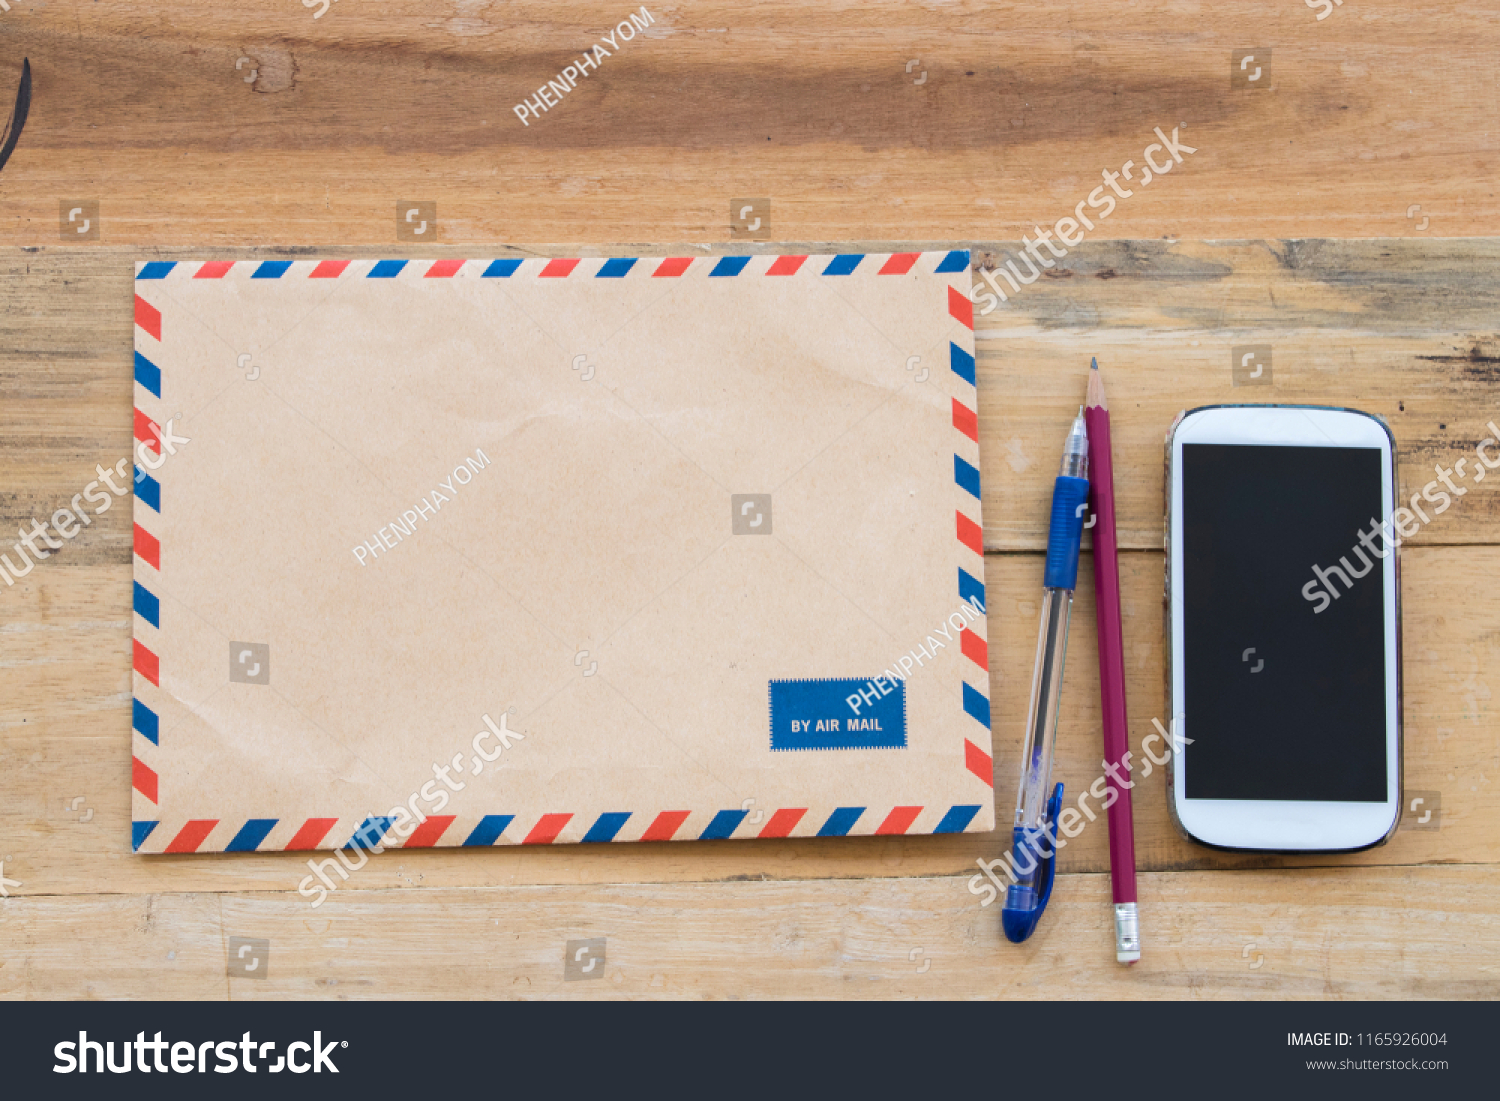 Envelope Air Mail Letter Confidential Papers Stock Photo (Edit Now